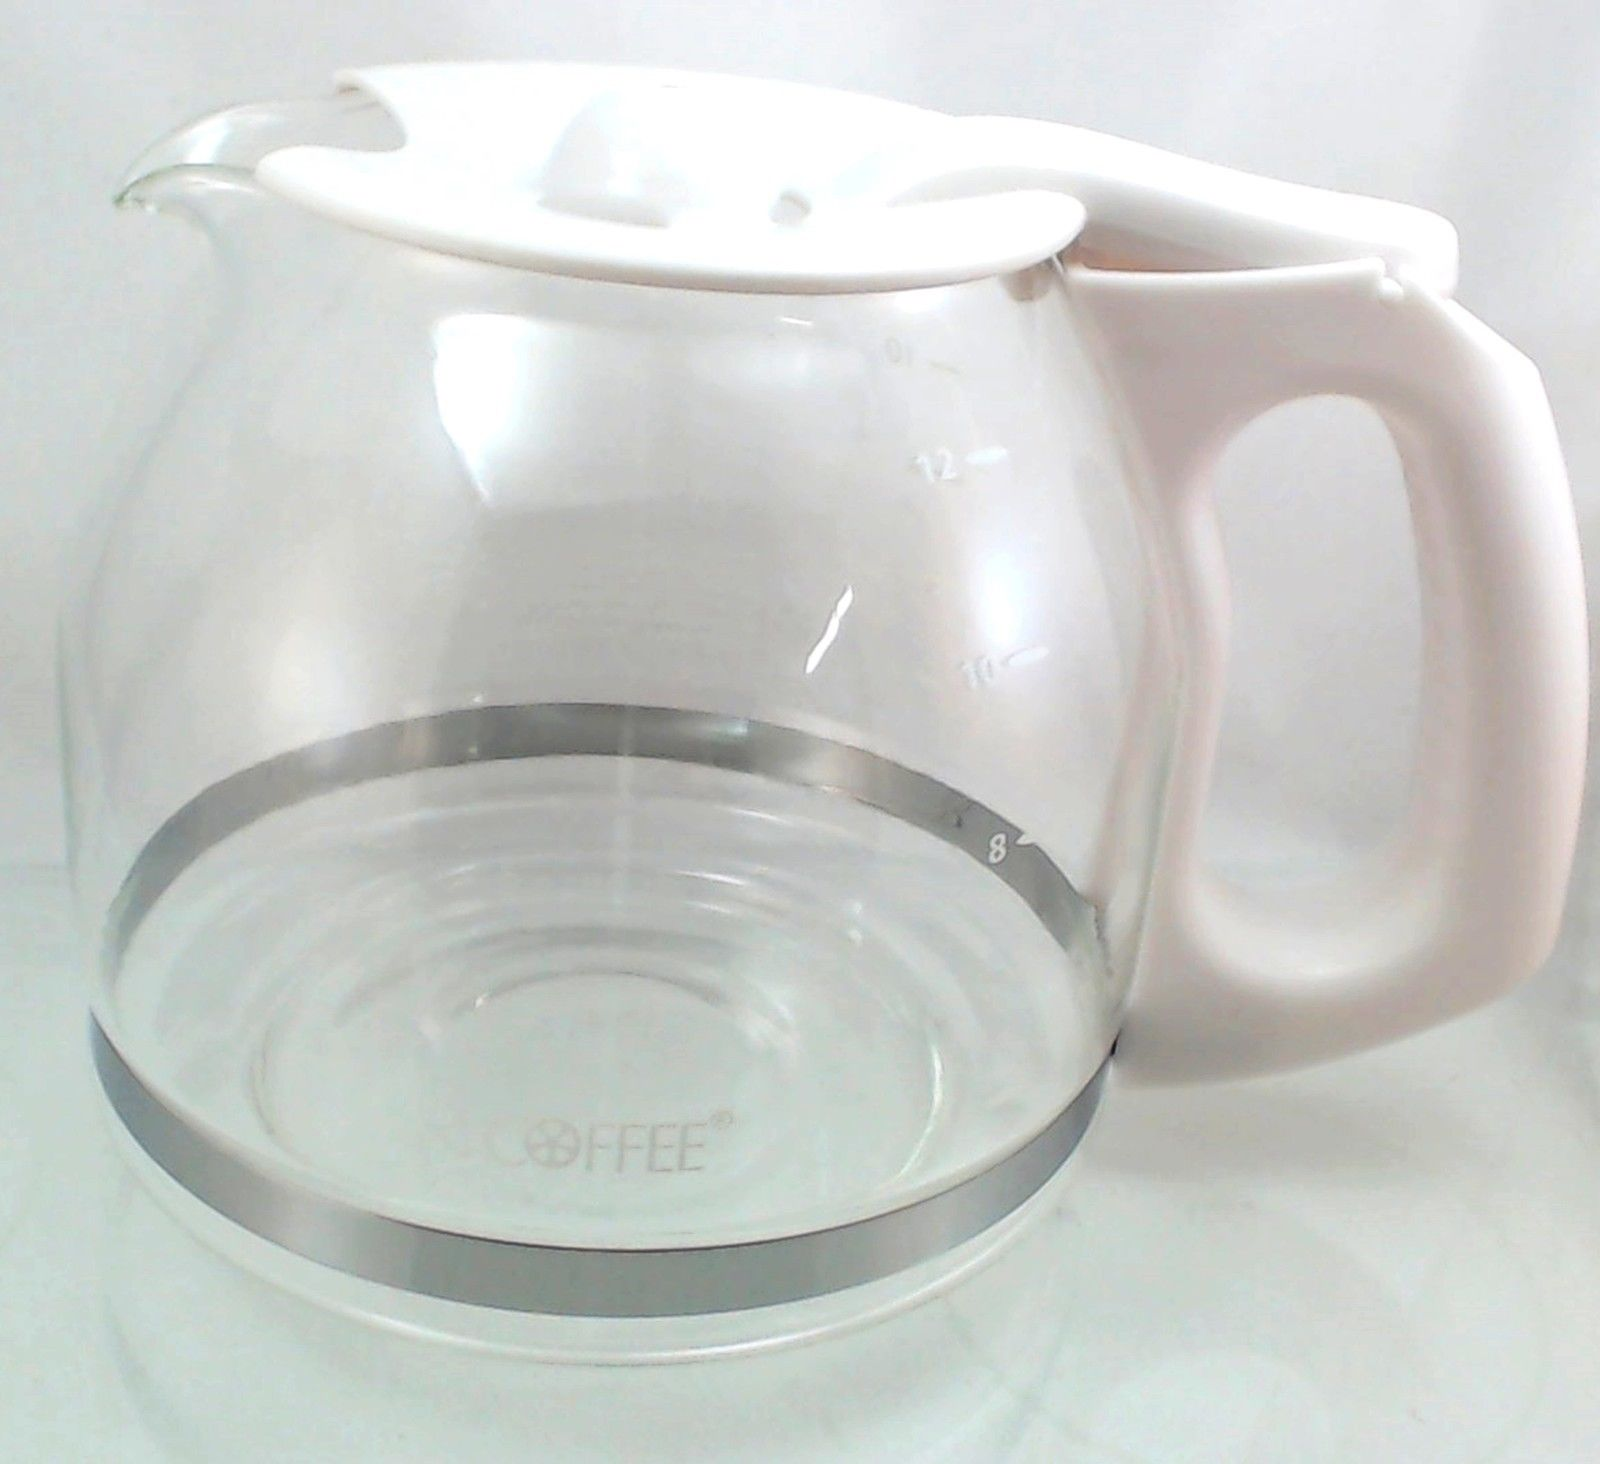 Genuine PLD13, Coffeemaker Glass Carafe, White 12 Cup fits Mr. Coffee GC12